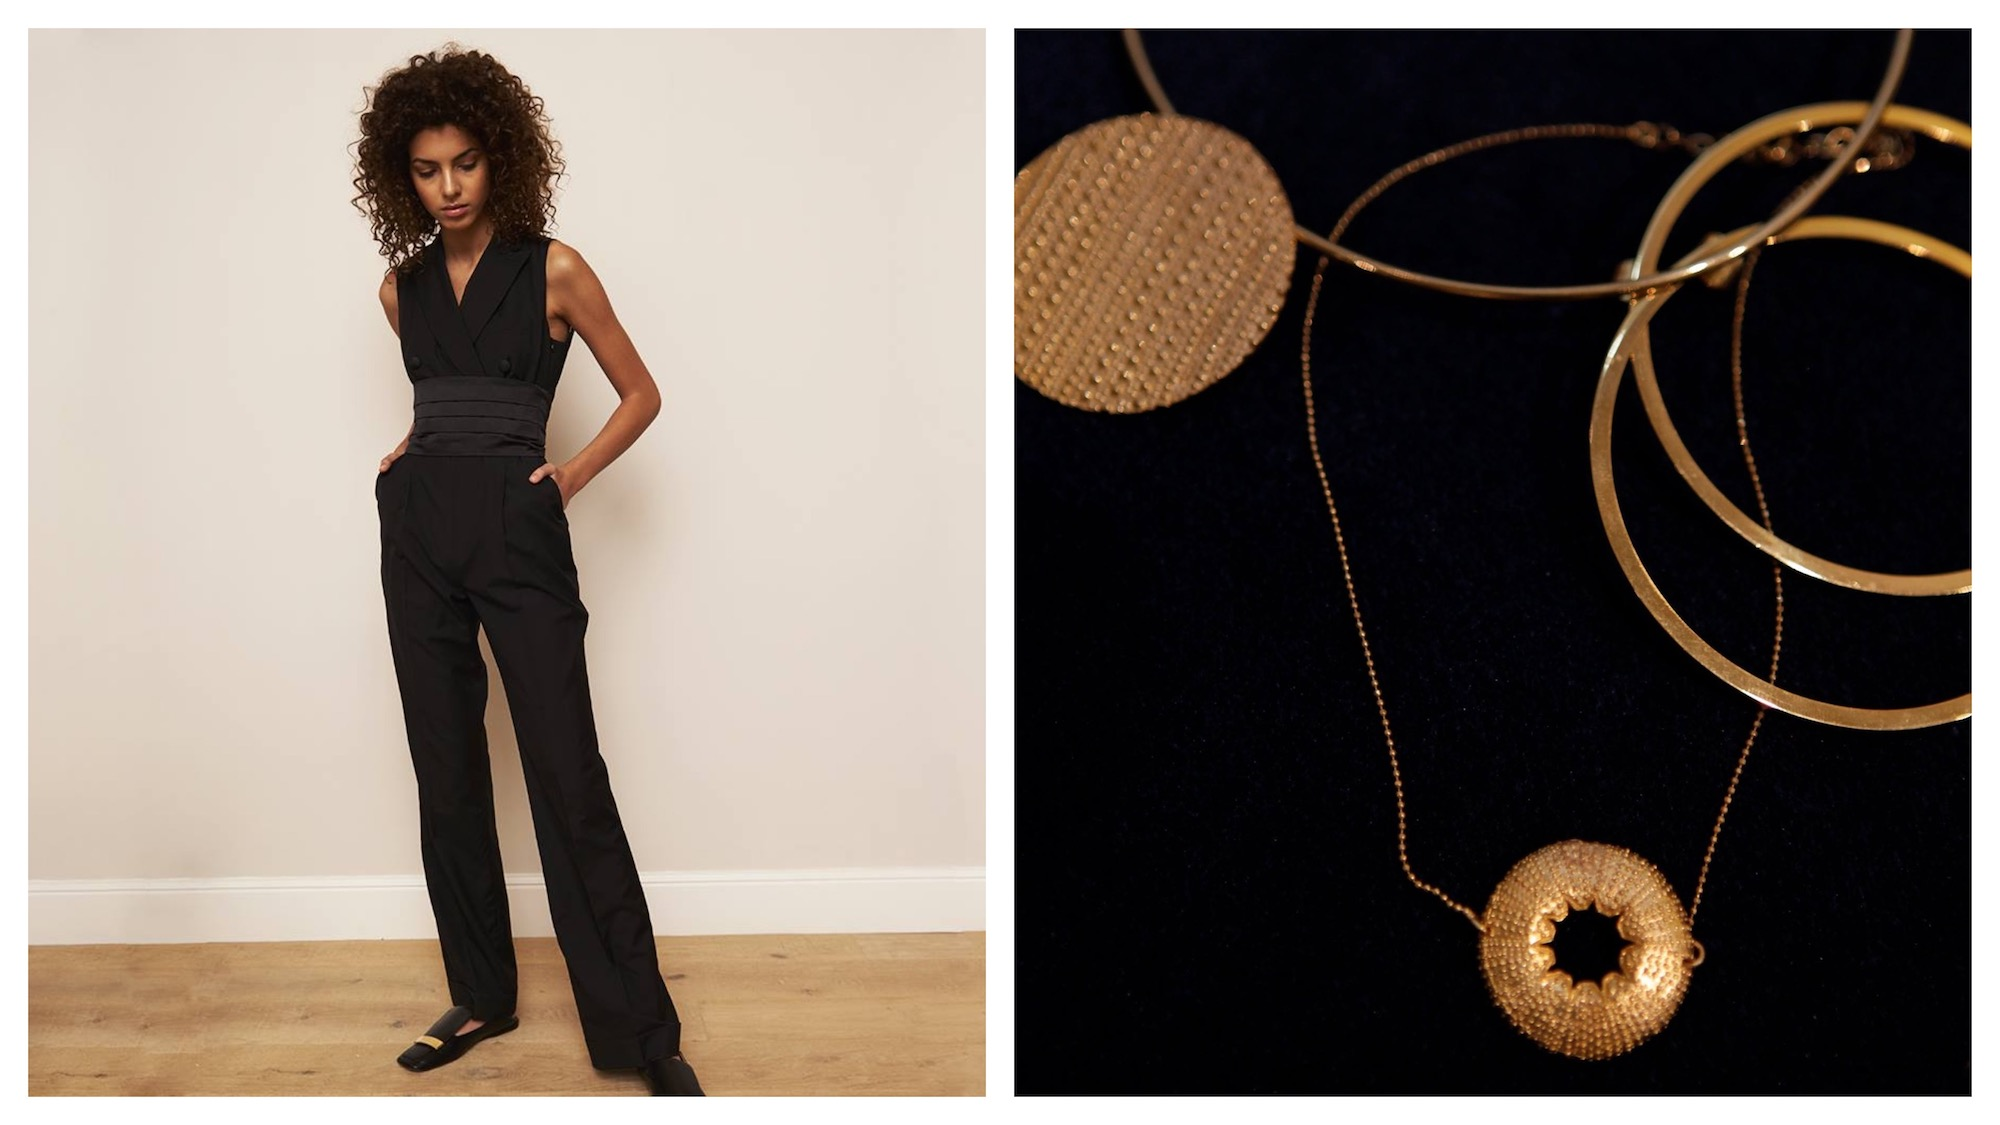 Shopping in Paris: a tuxedo style jumpsuit on a model (left) and handmade gold-plated jewelry (right) at secret luxury Paris concept store the Society Room.